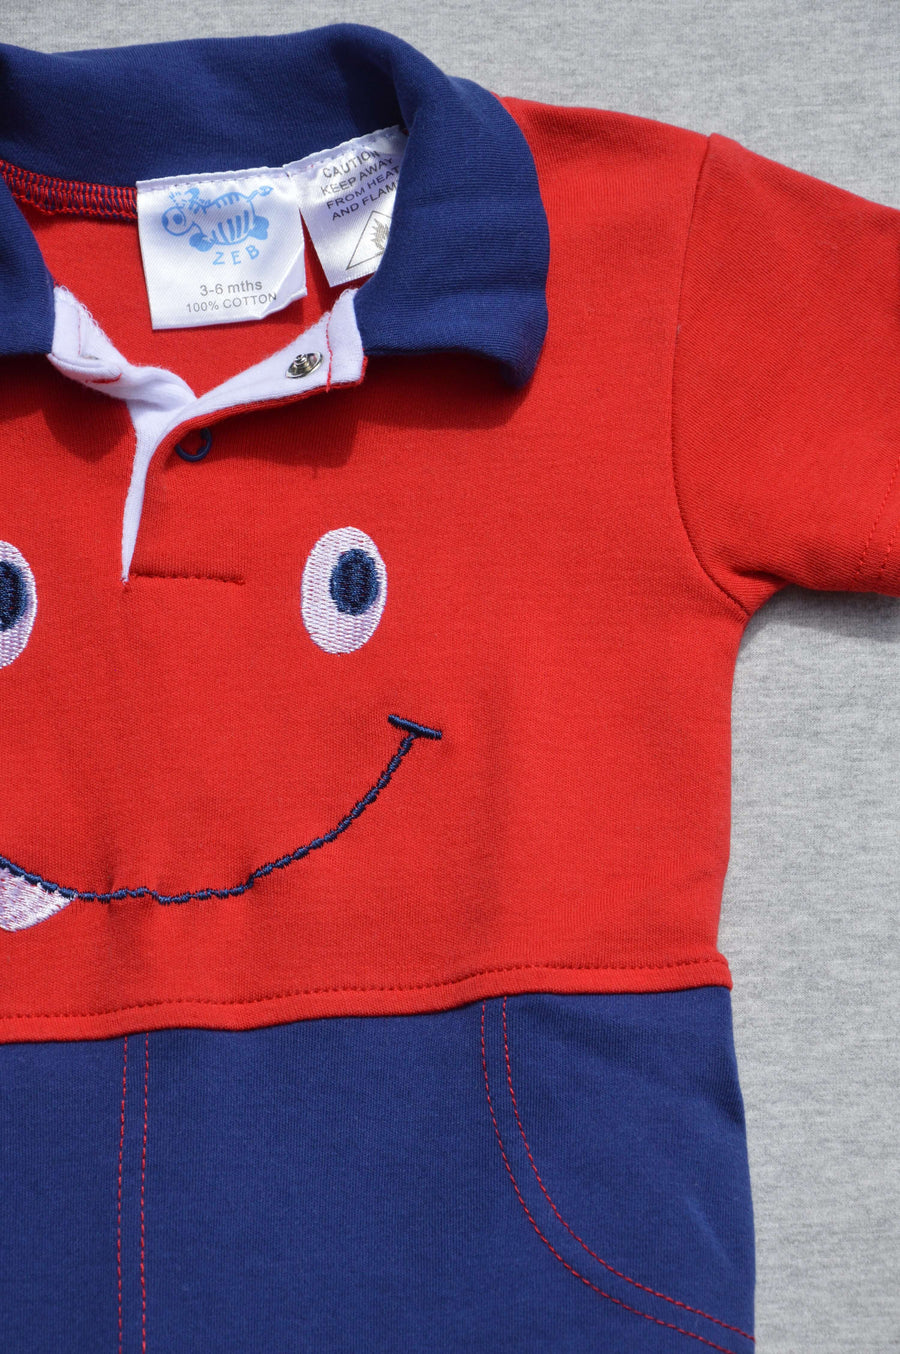 Zeb - nearly new - funky red & blue onesie, size 3-6m